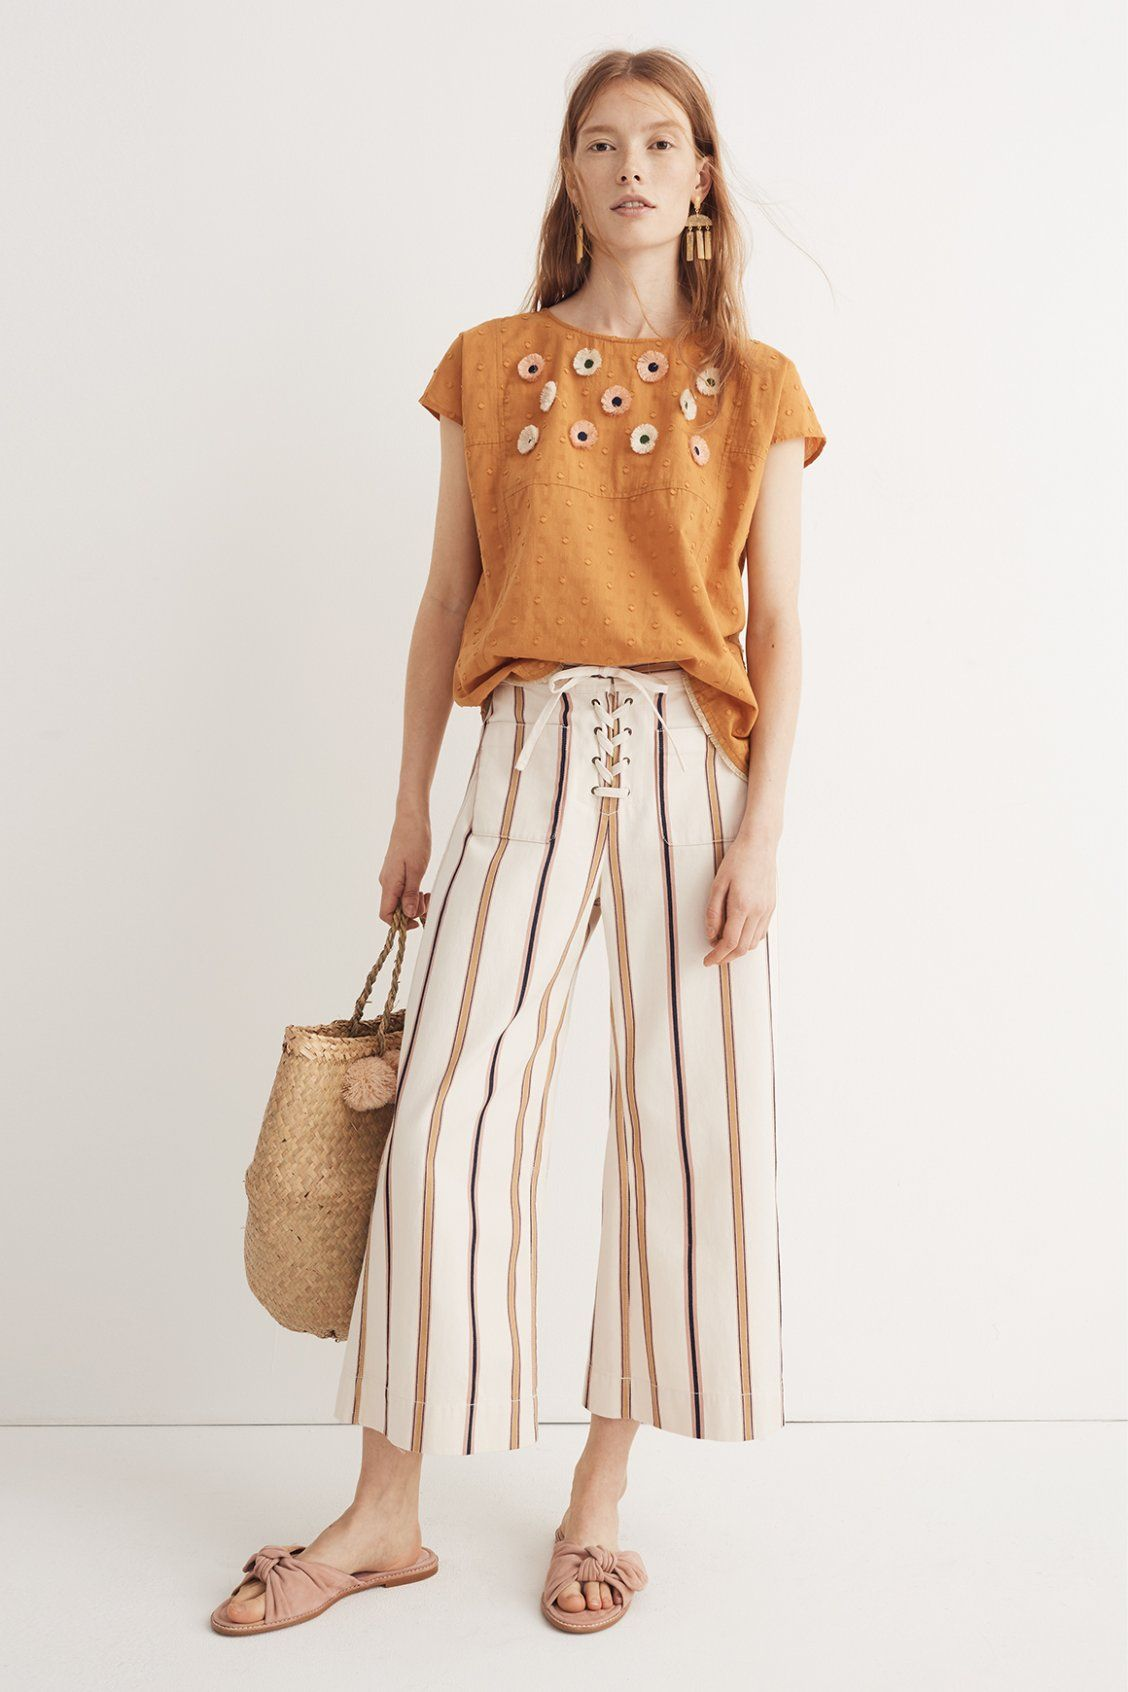 46514d2093559 madewell embroidered daisy top worn with striped wide-leg crop pants + the  naida half-bow sandal. call 866 544 1937 or email shopfirst madewell.com to  ...